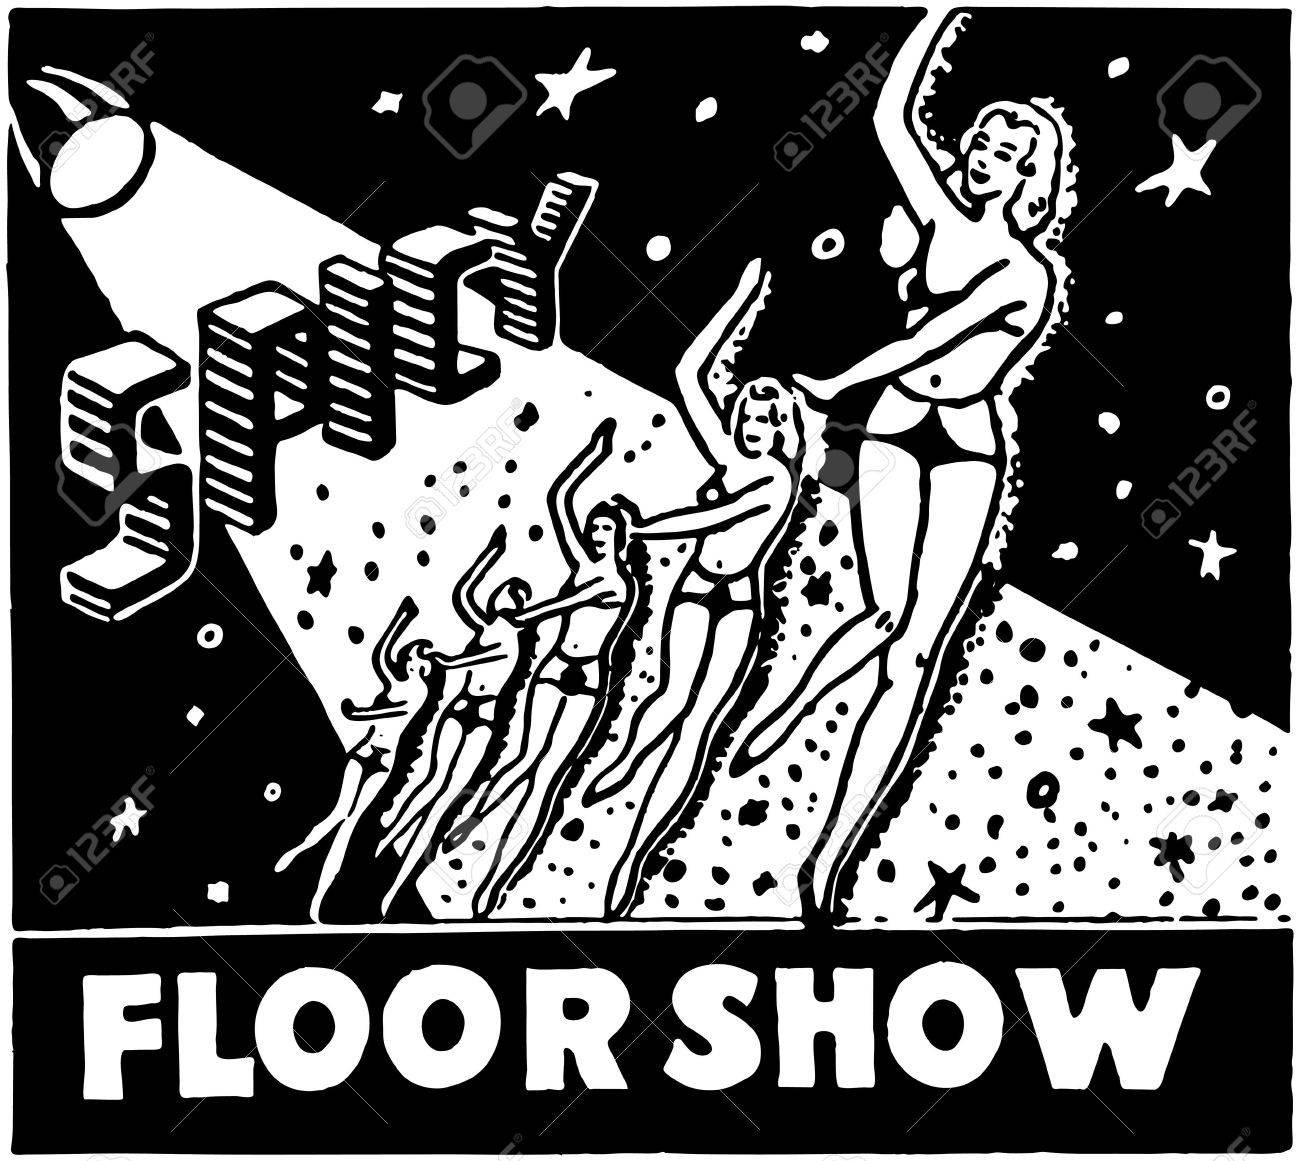 Spicy Floor Show Stock Vector - 28343007